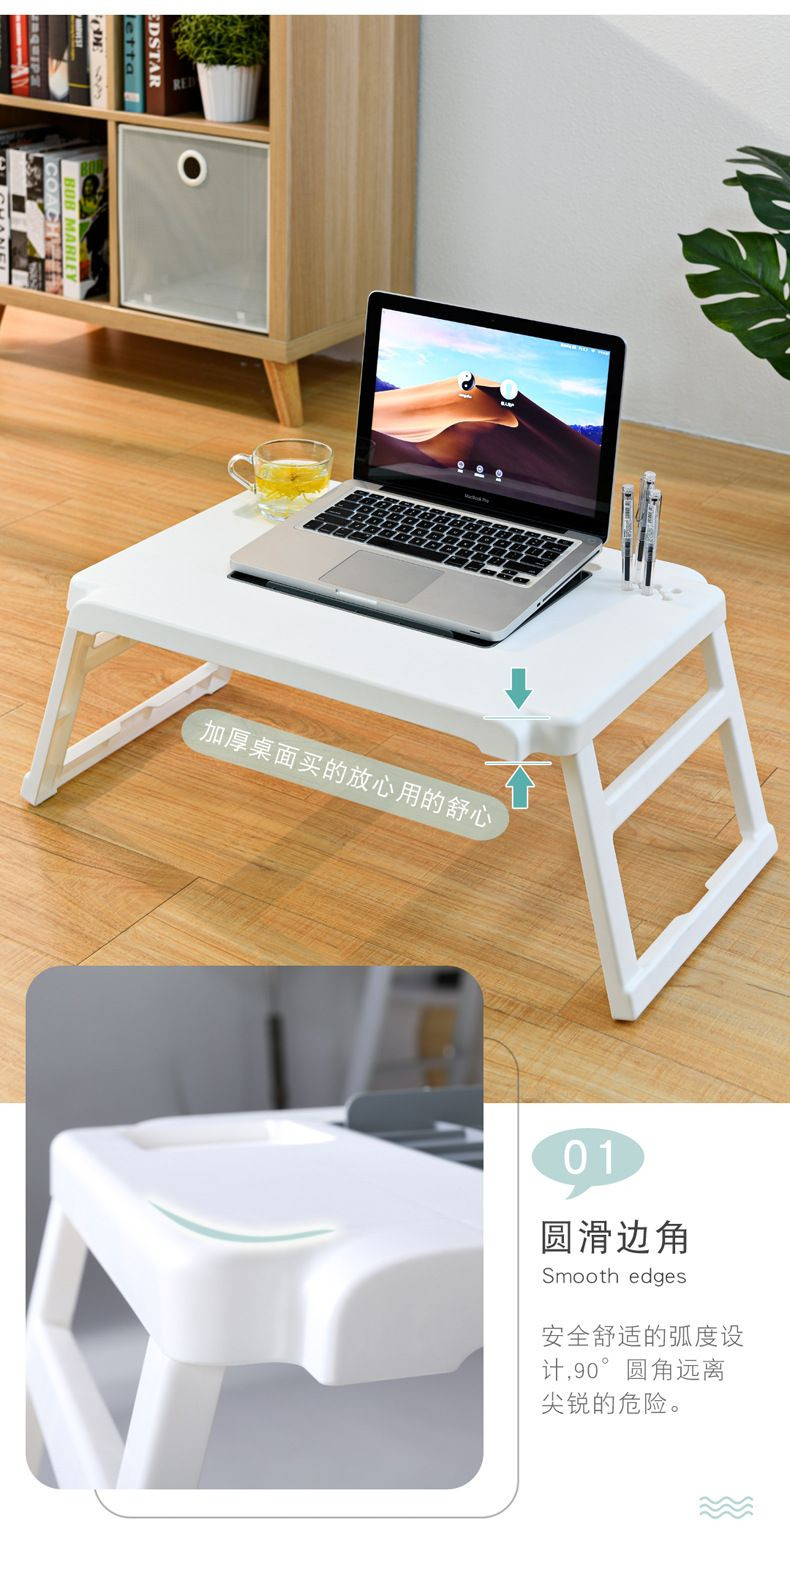 Foldable desk, foldable laptop desk, notebook desk